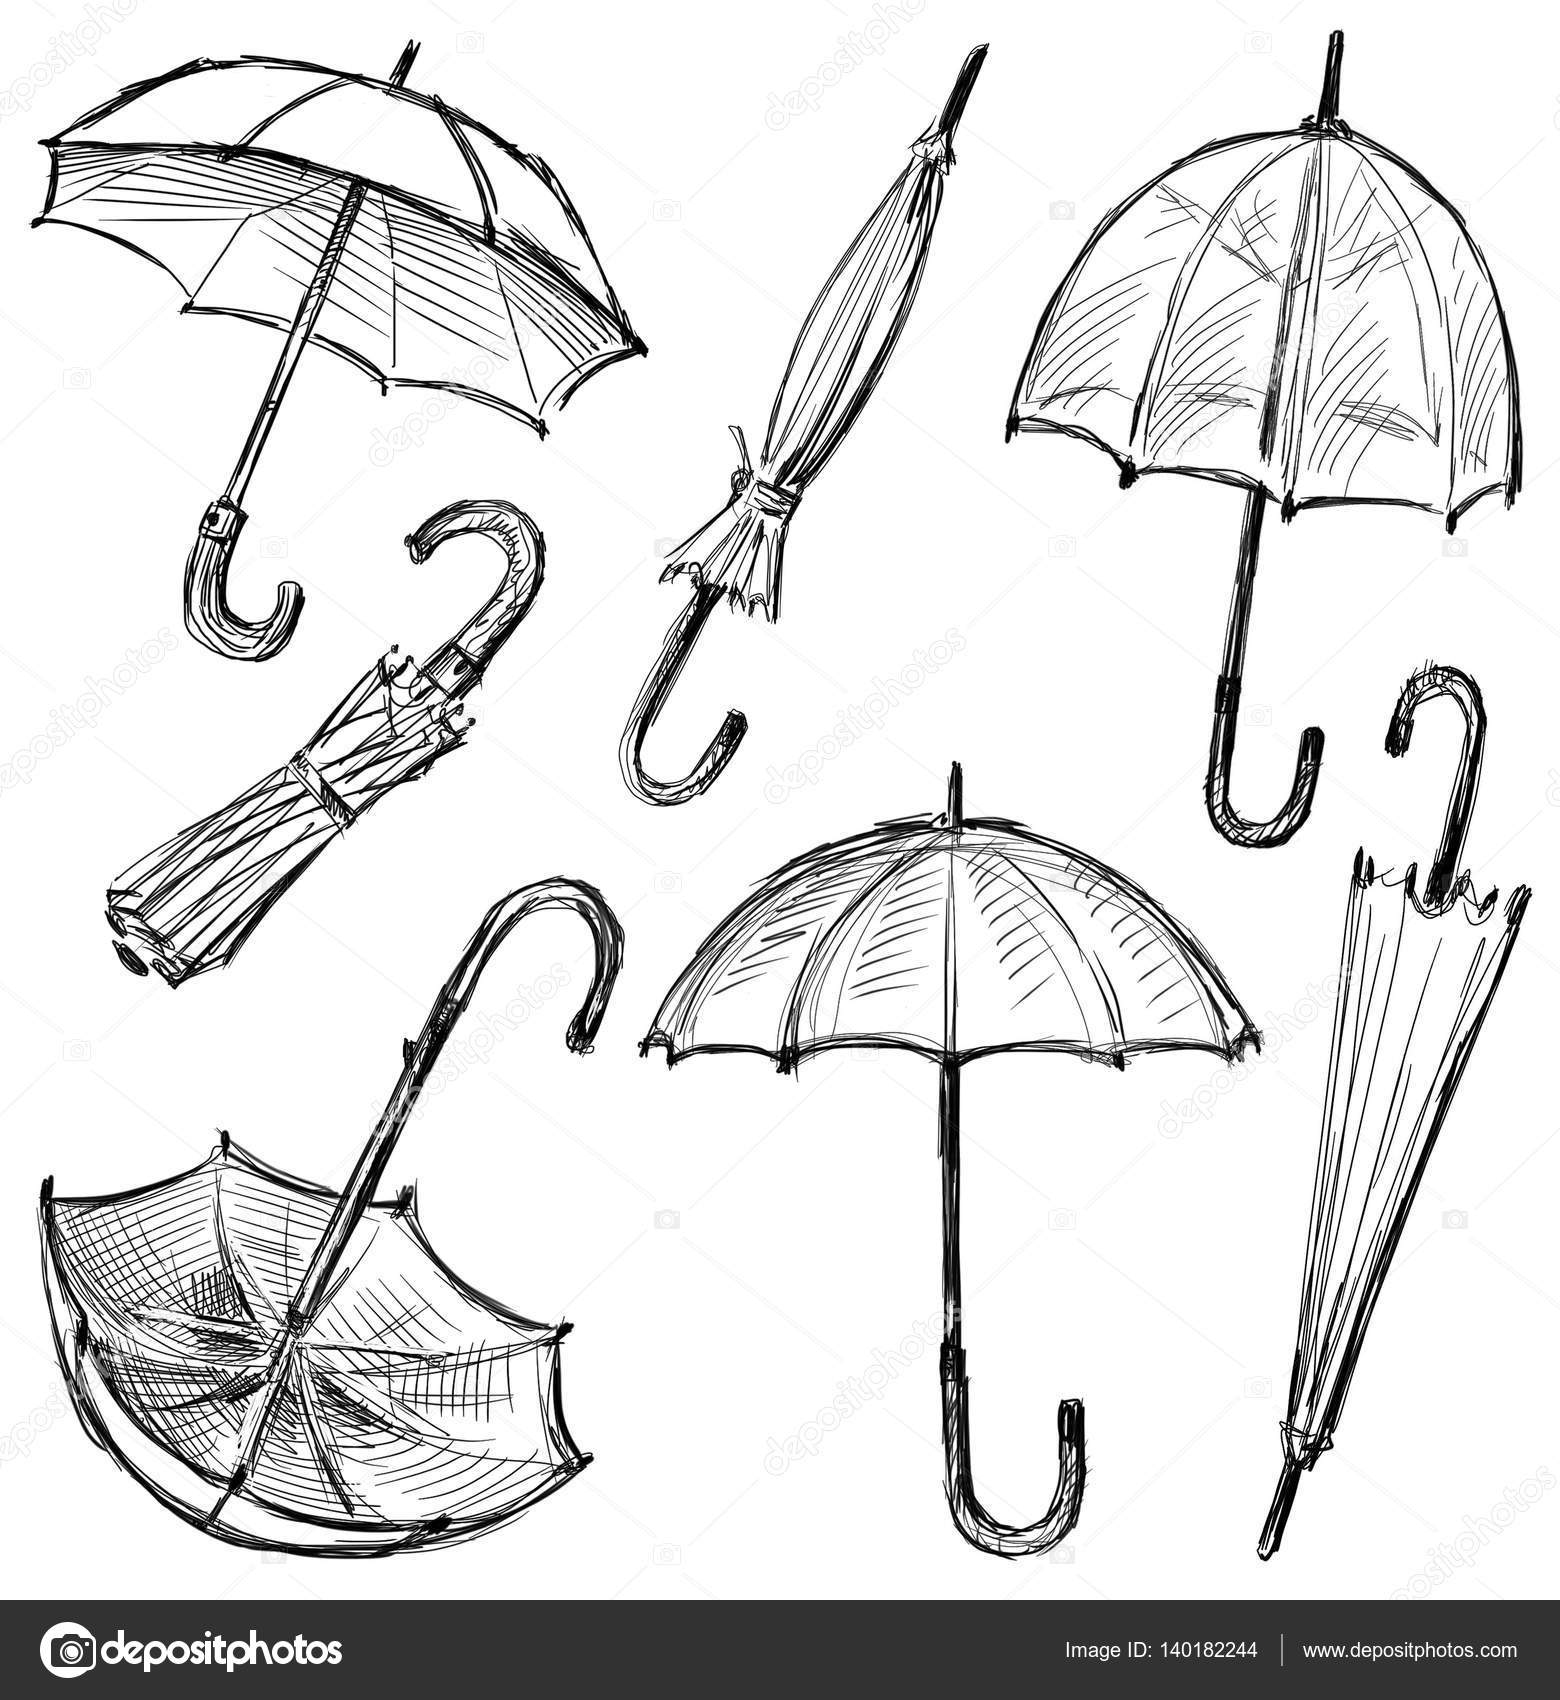 Sketches of the umbrellas stock photo